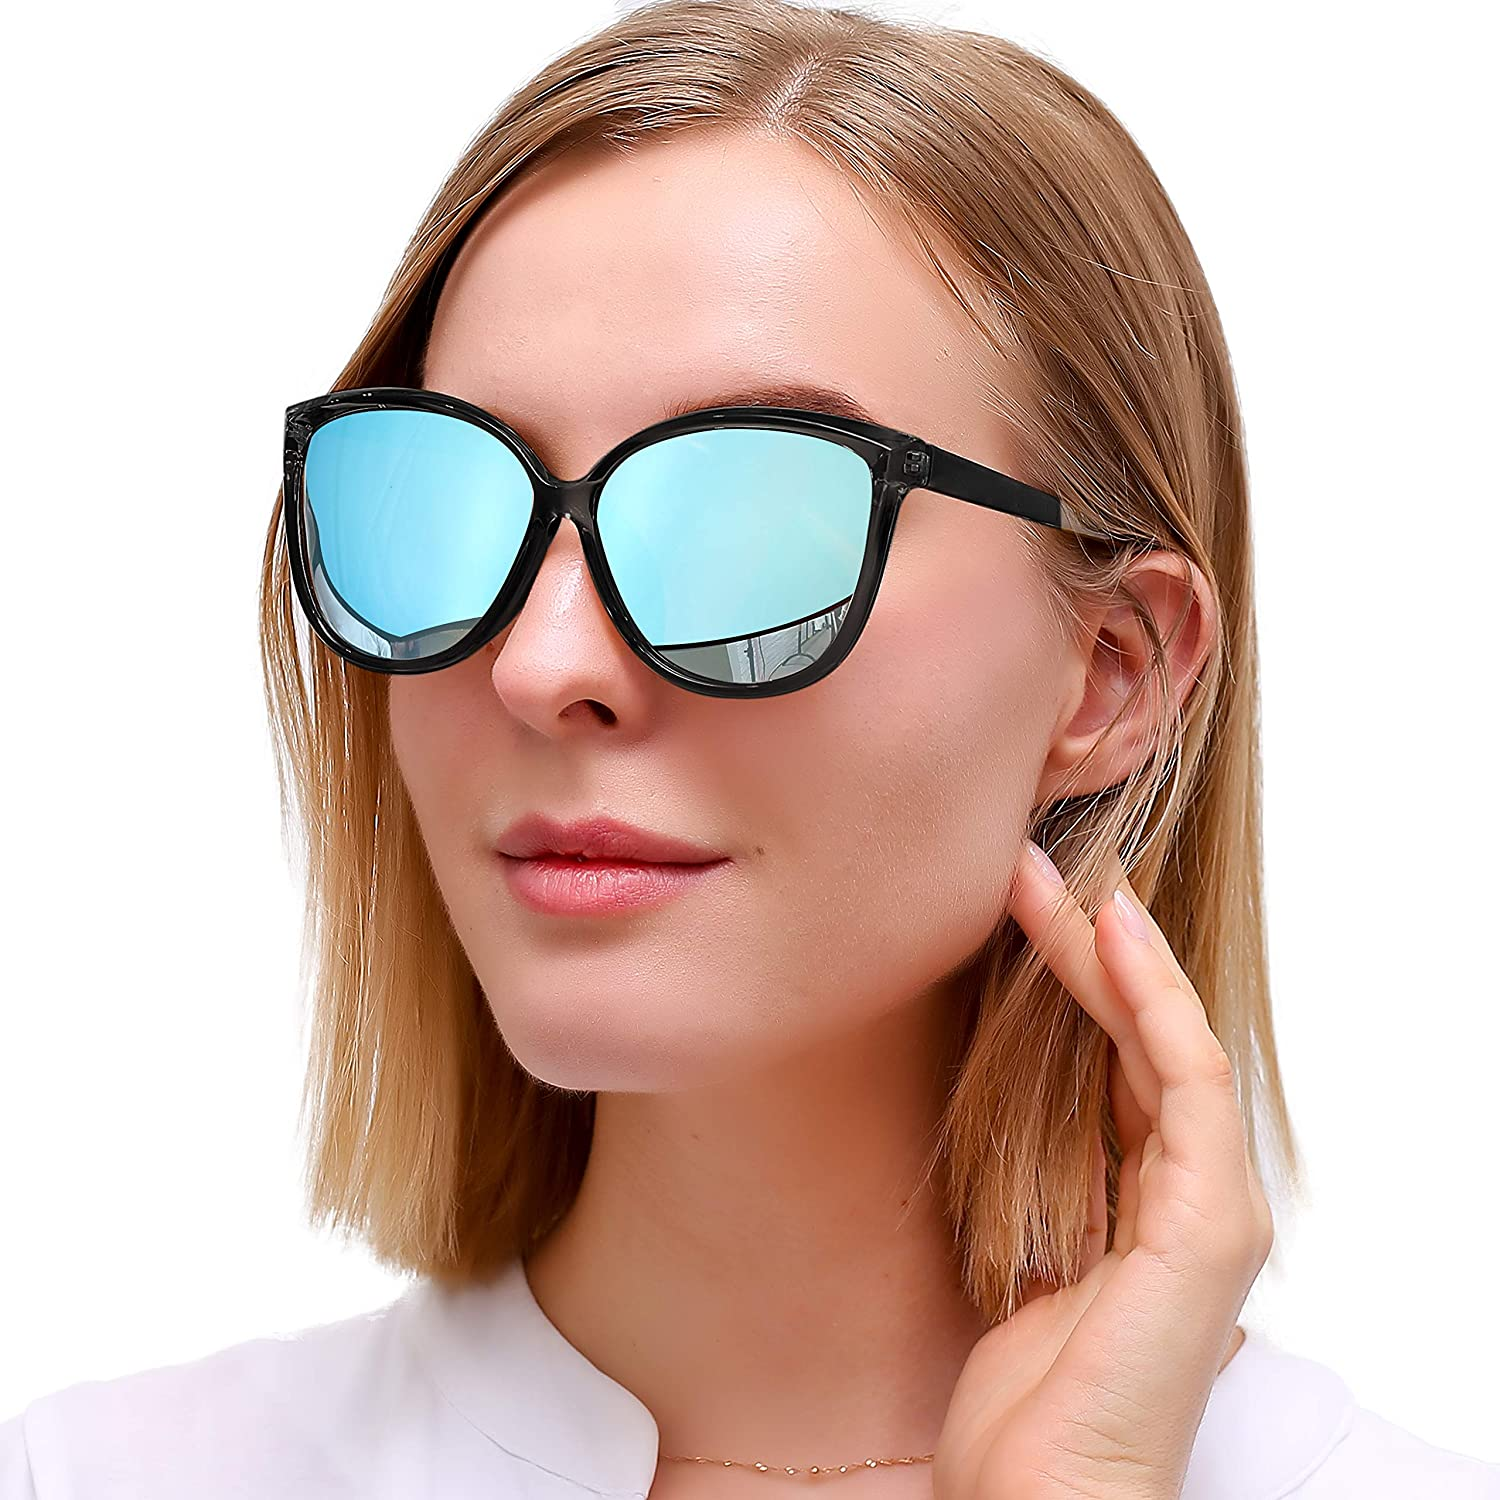 6a067e6e86 polarized. Lens width  55 millimeters ▻Trendy Cat Eye Design:The cat s eye-shaped  flash lens has a modern design. Can match your different fashion styles  ...